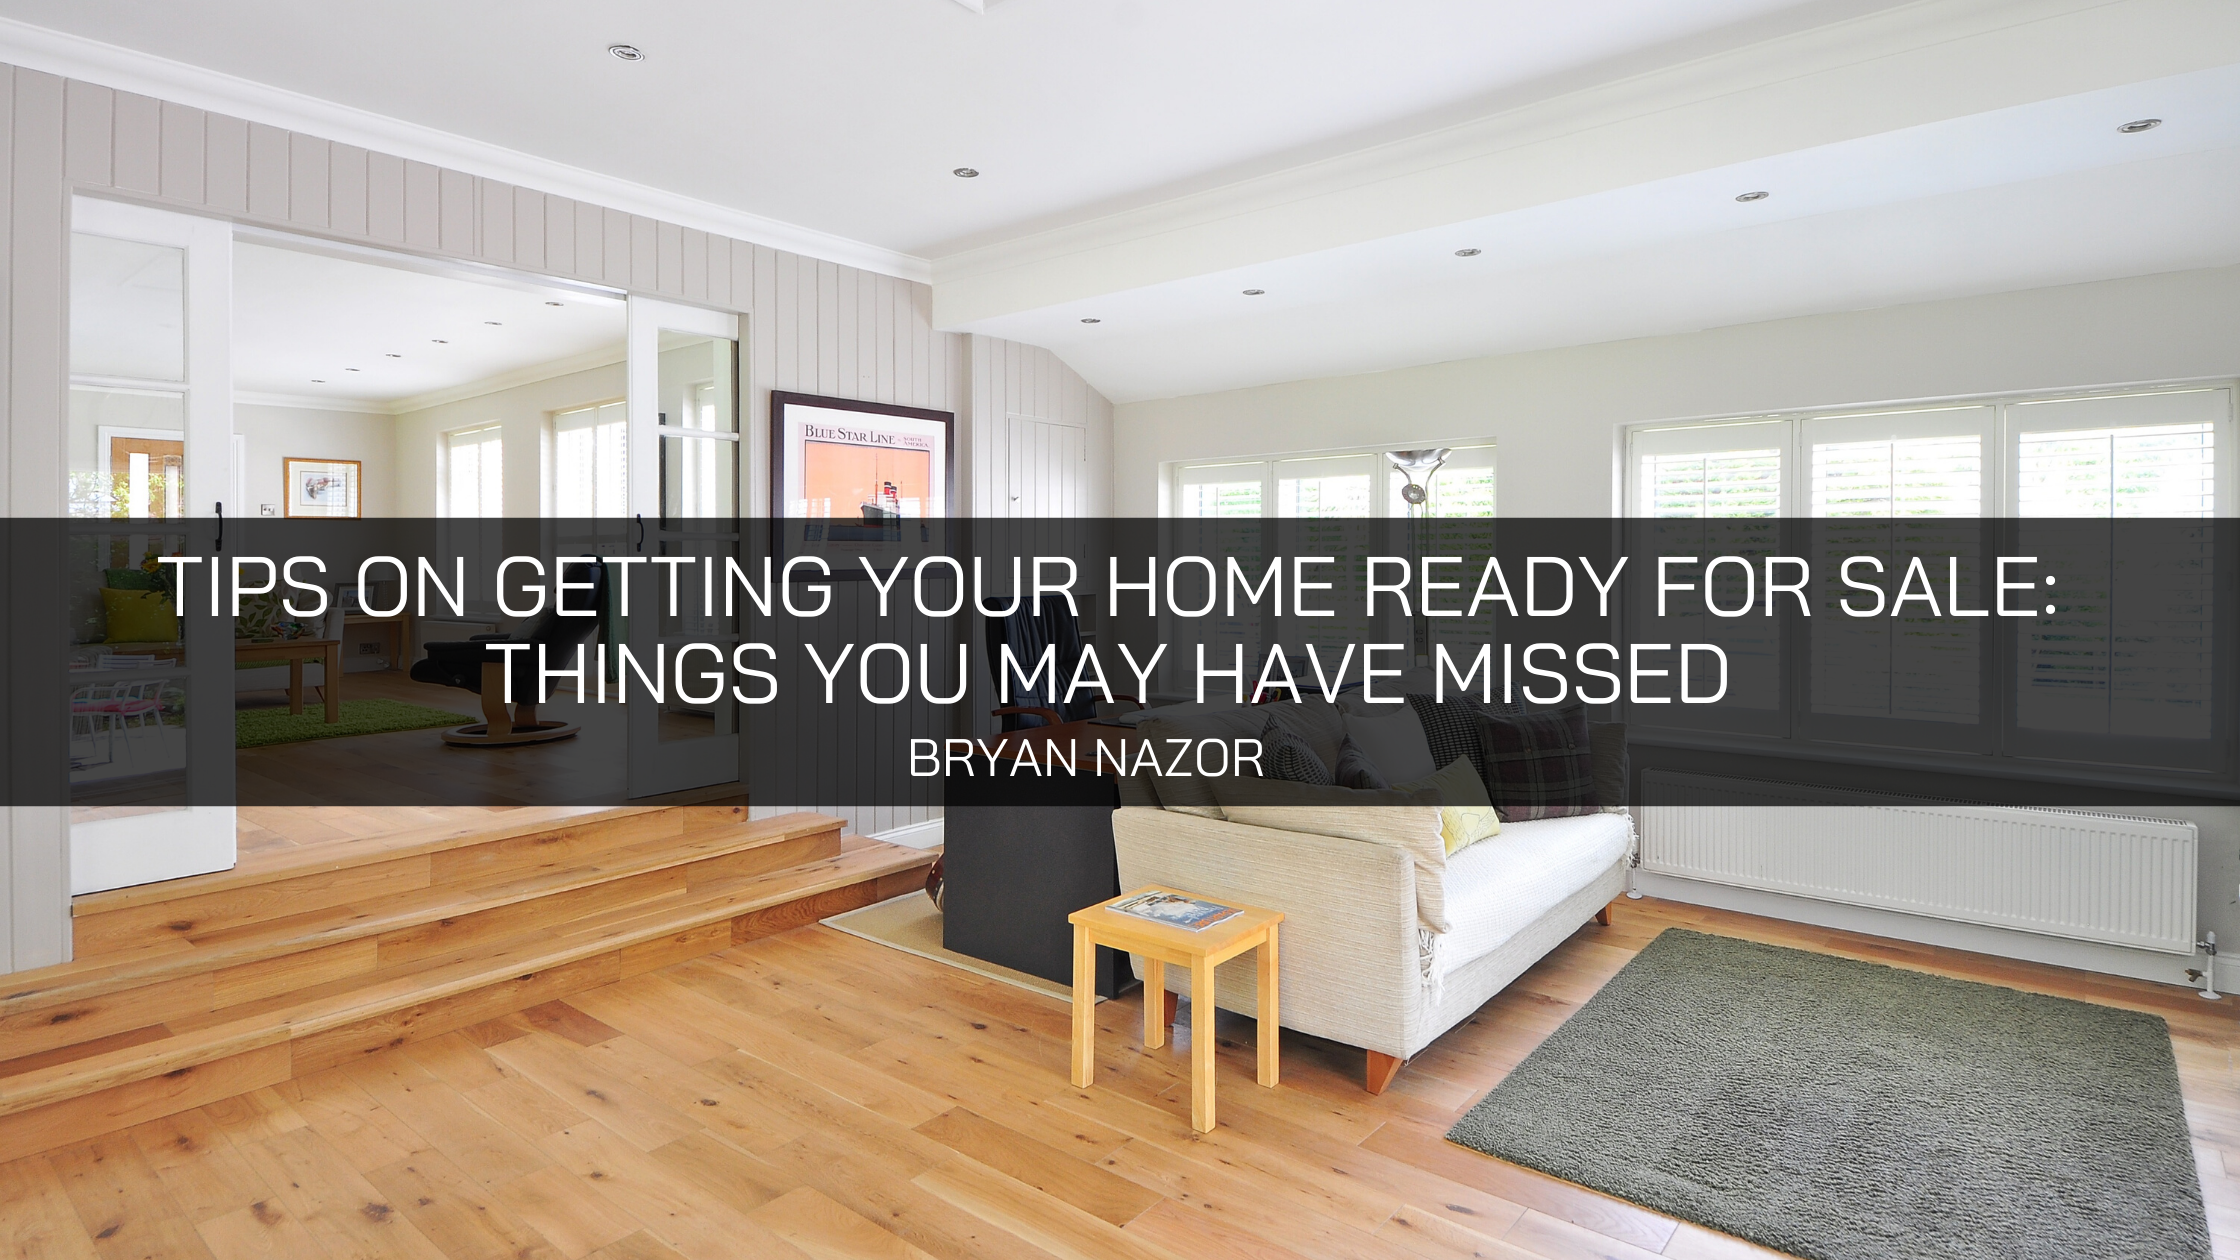 Bryan Nazor's Tips on Getting Your Home Ready for Sale: Things You May Have Missed